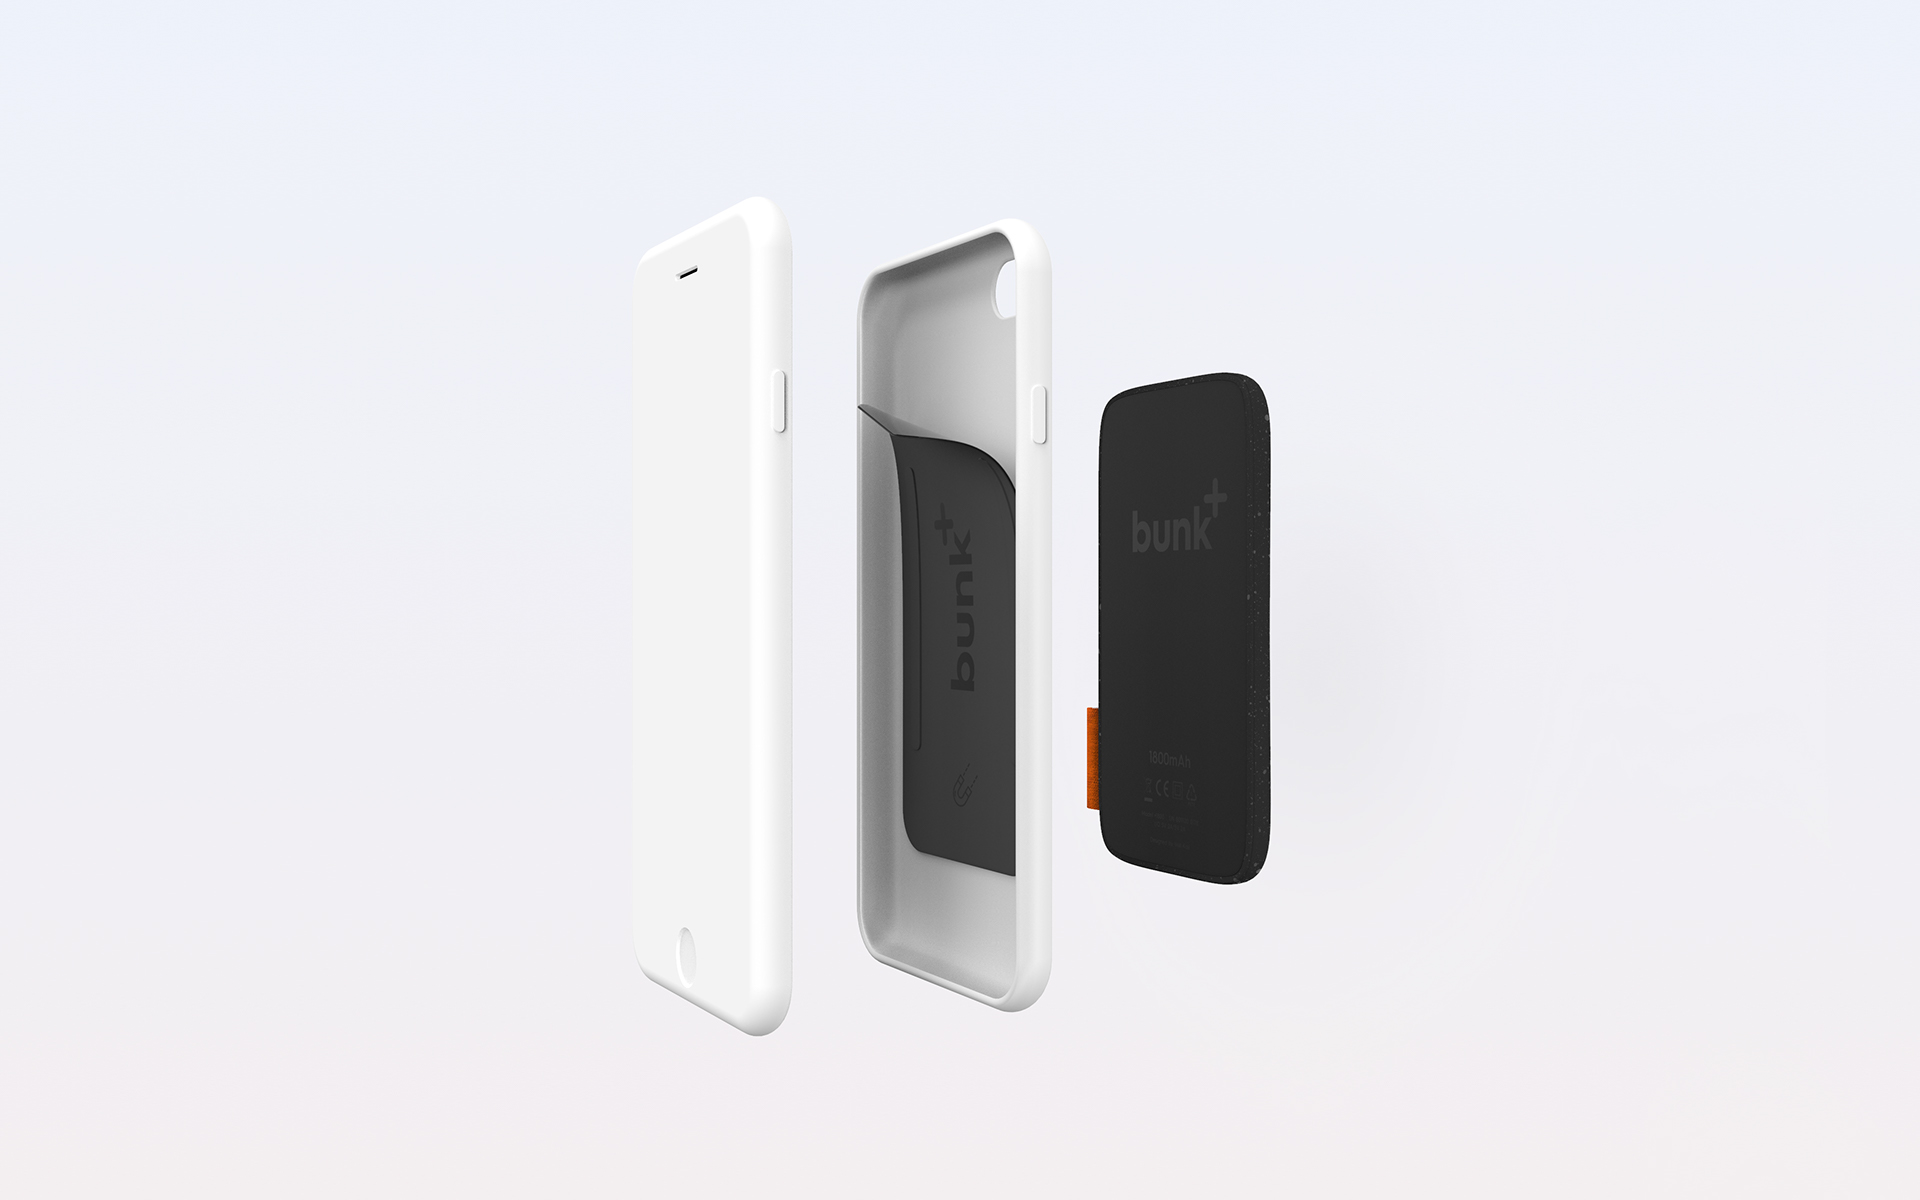 Industrial Design: Bunk - The wireless smartphone battery